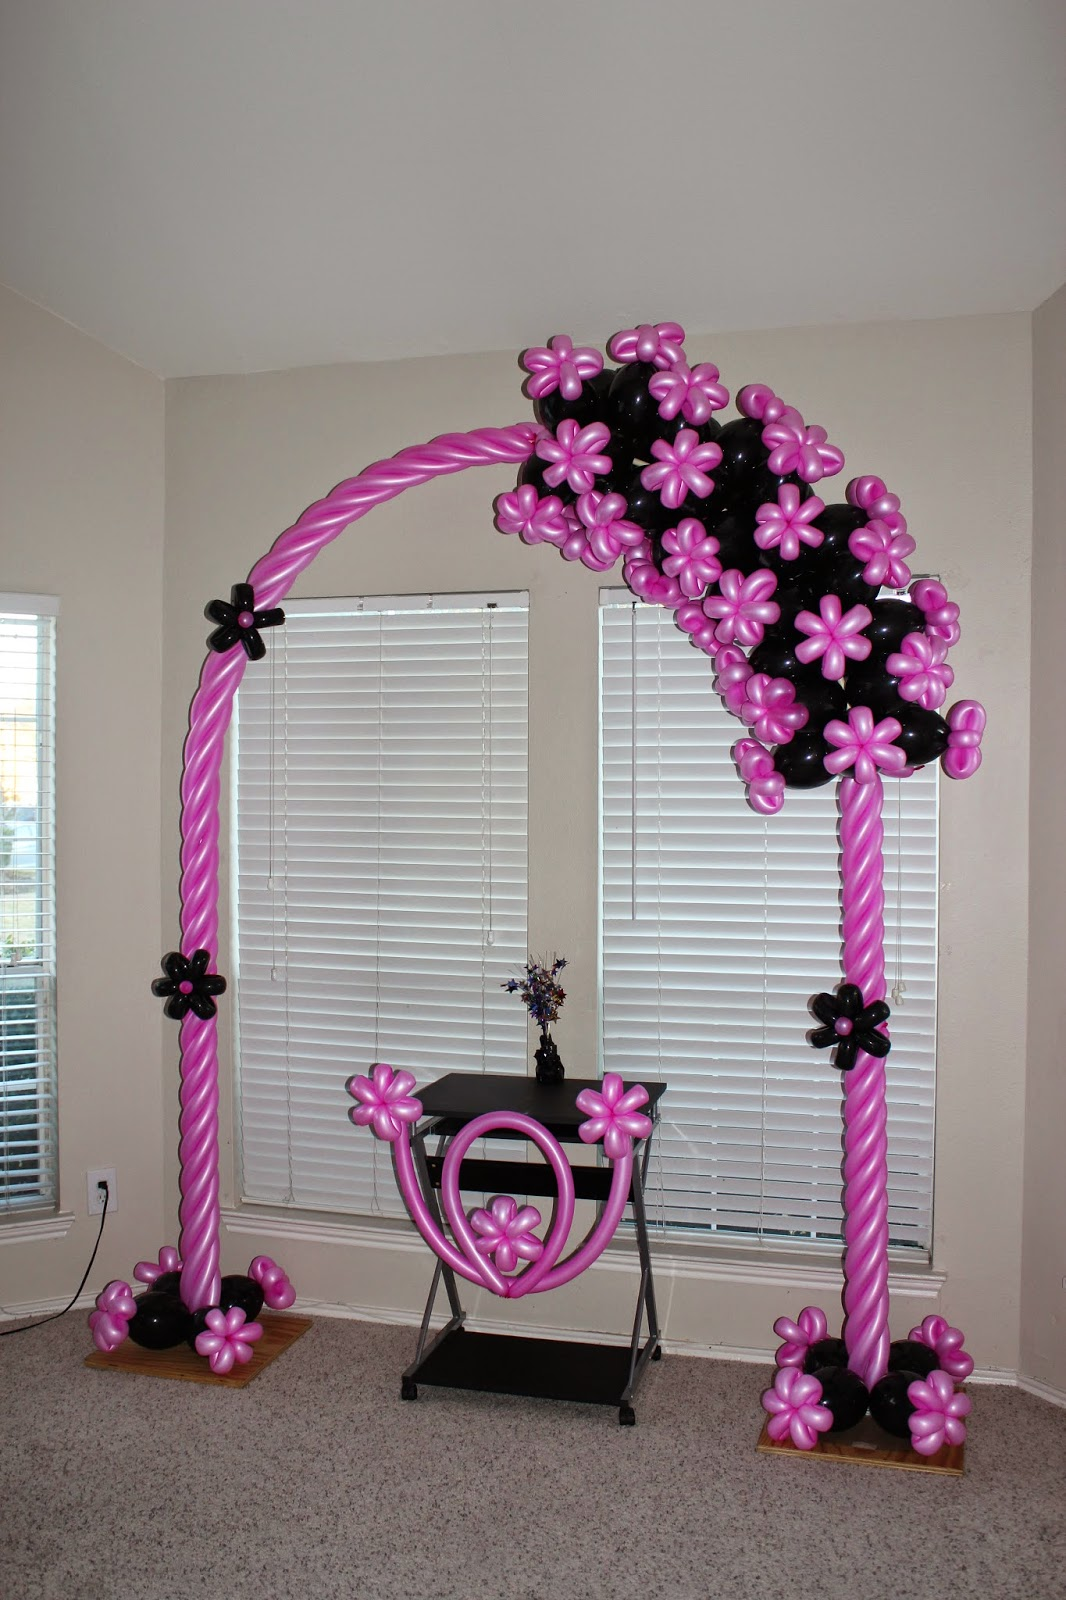 Santo diamond balloon design pink black balloon arch for Arches decoration ideas